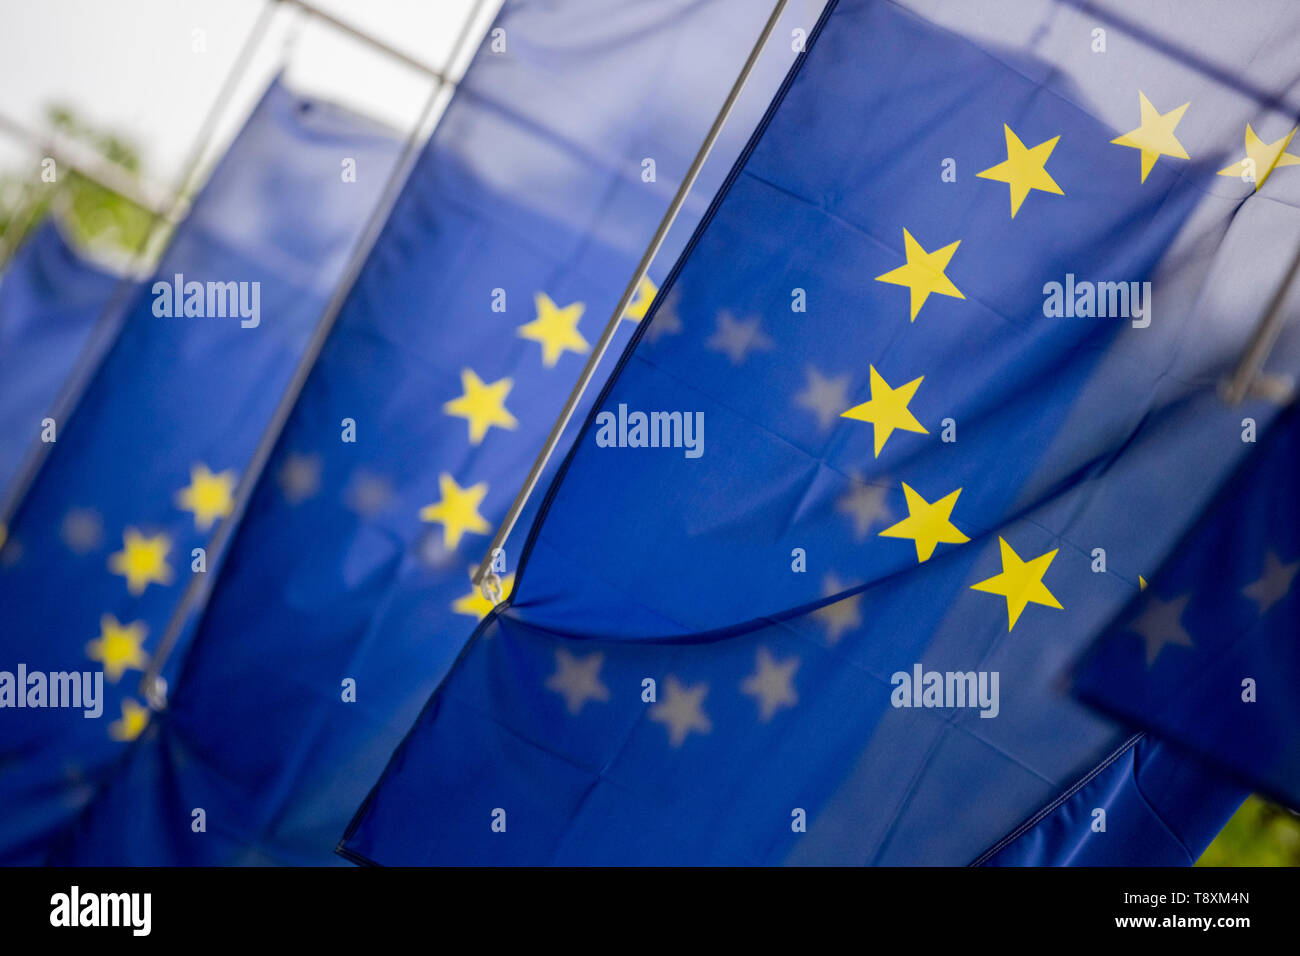 15 May 2019, Berlin: European flags hang at the entrance to the Haus der Deutschen Wirtschaft. Photo: Christoph Soeder/dpa - Stock Image